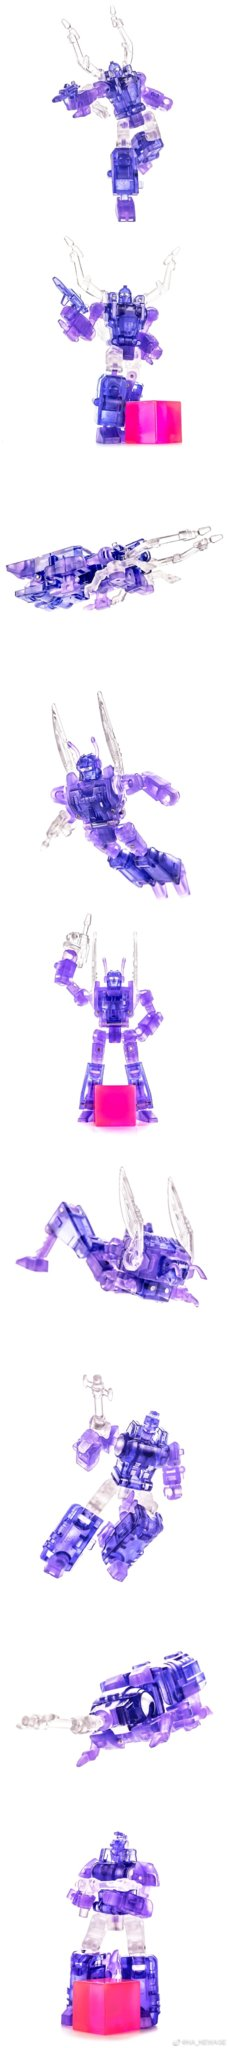 Newage Insecticos Clear Purple Variant-02.jpg